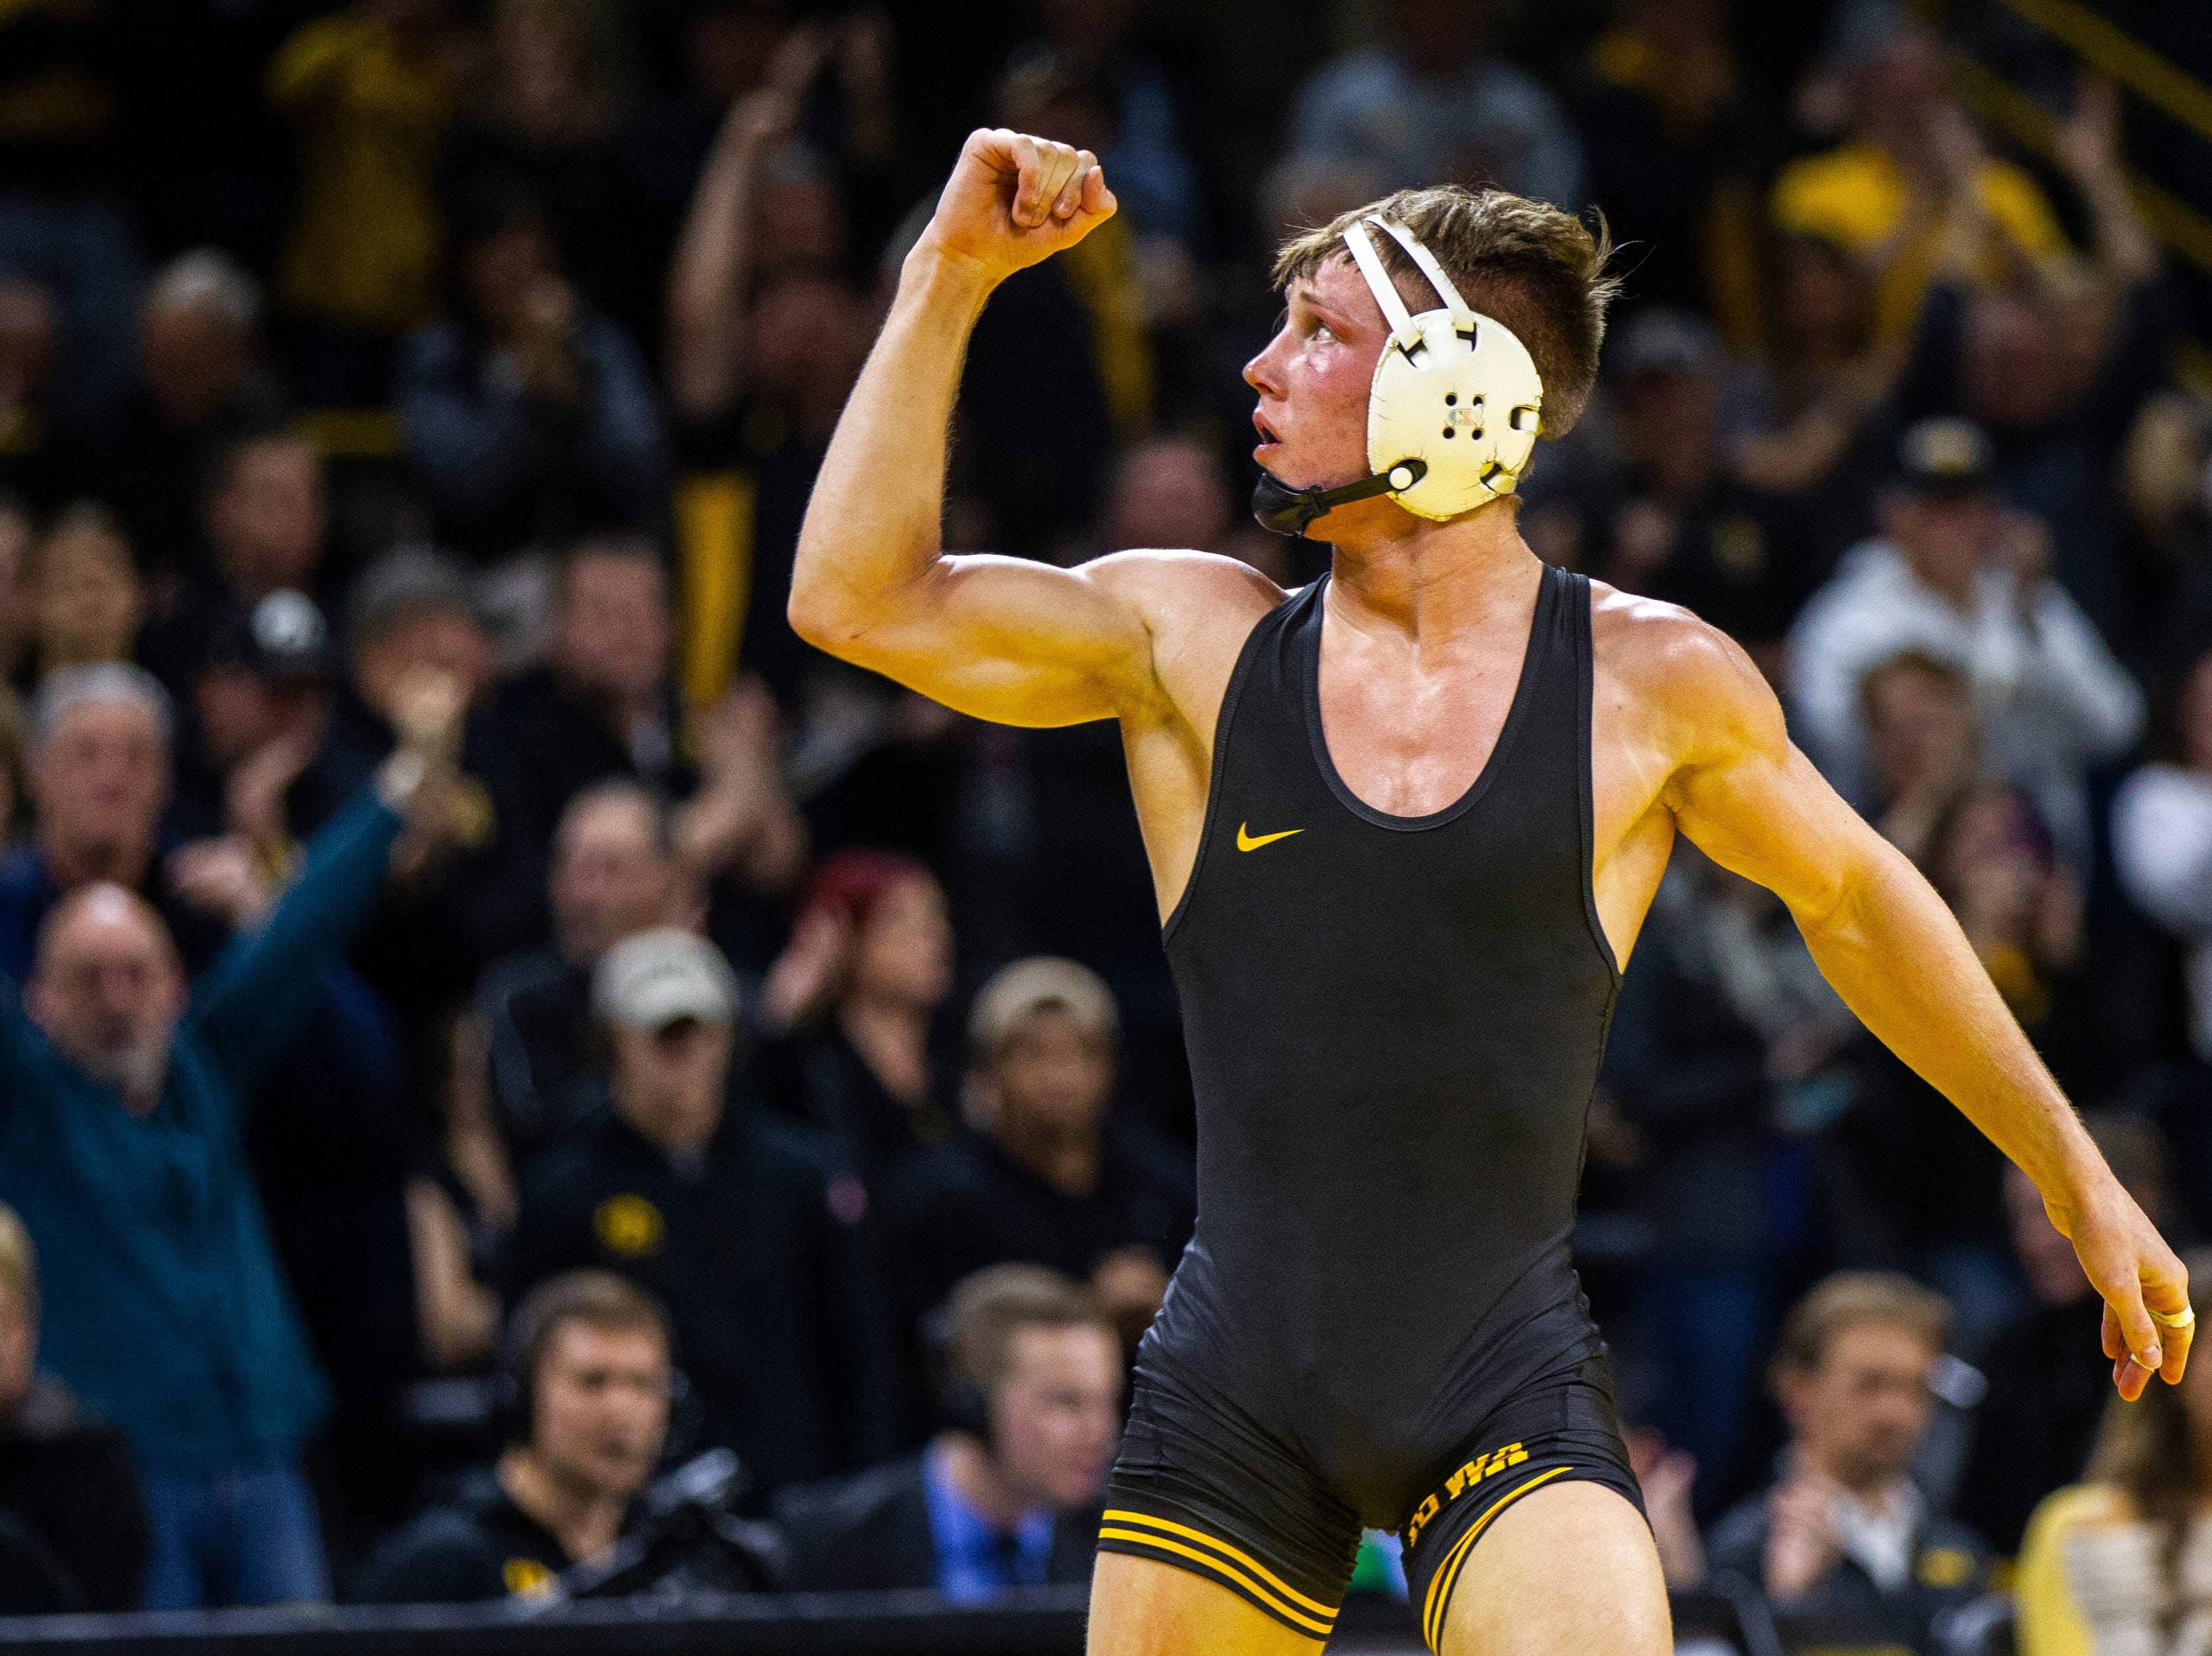 Iowa wrestling blows by Princeton in home opener